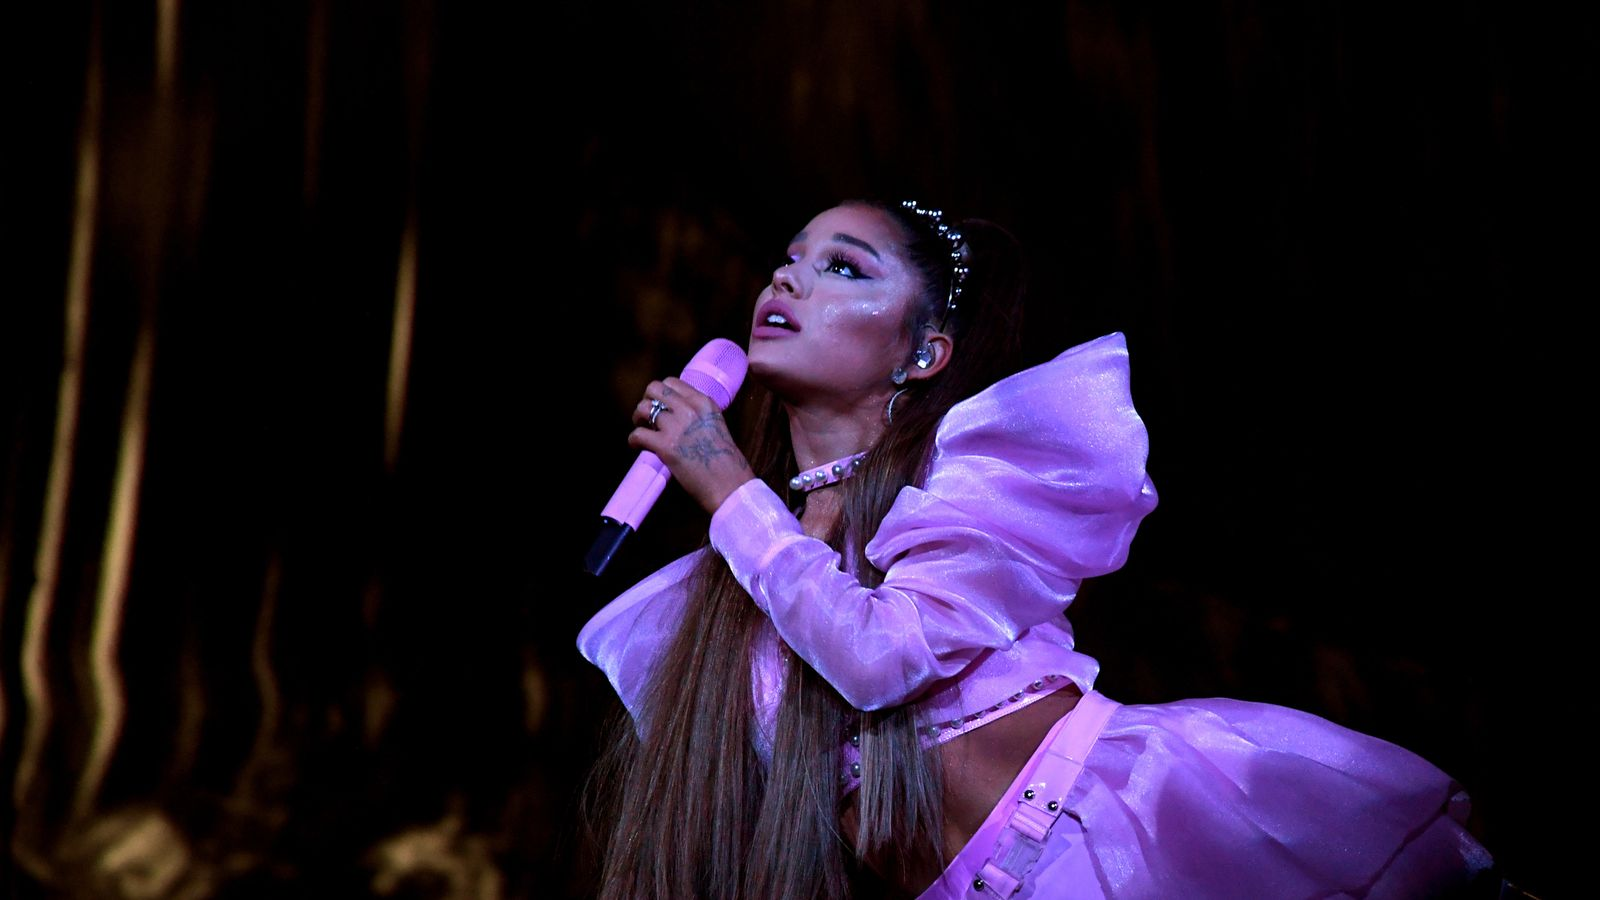 Ariana Grande Says She Is Still Processing A Lot After Breaking Down On Stage Ents Arts News Sky News